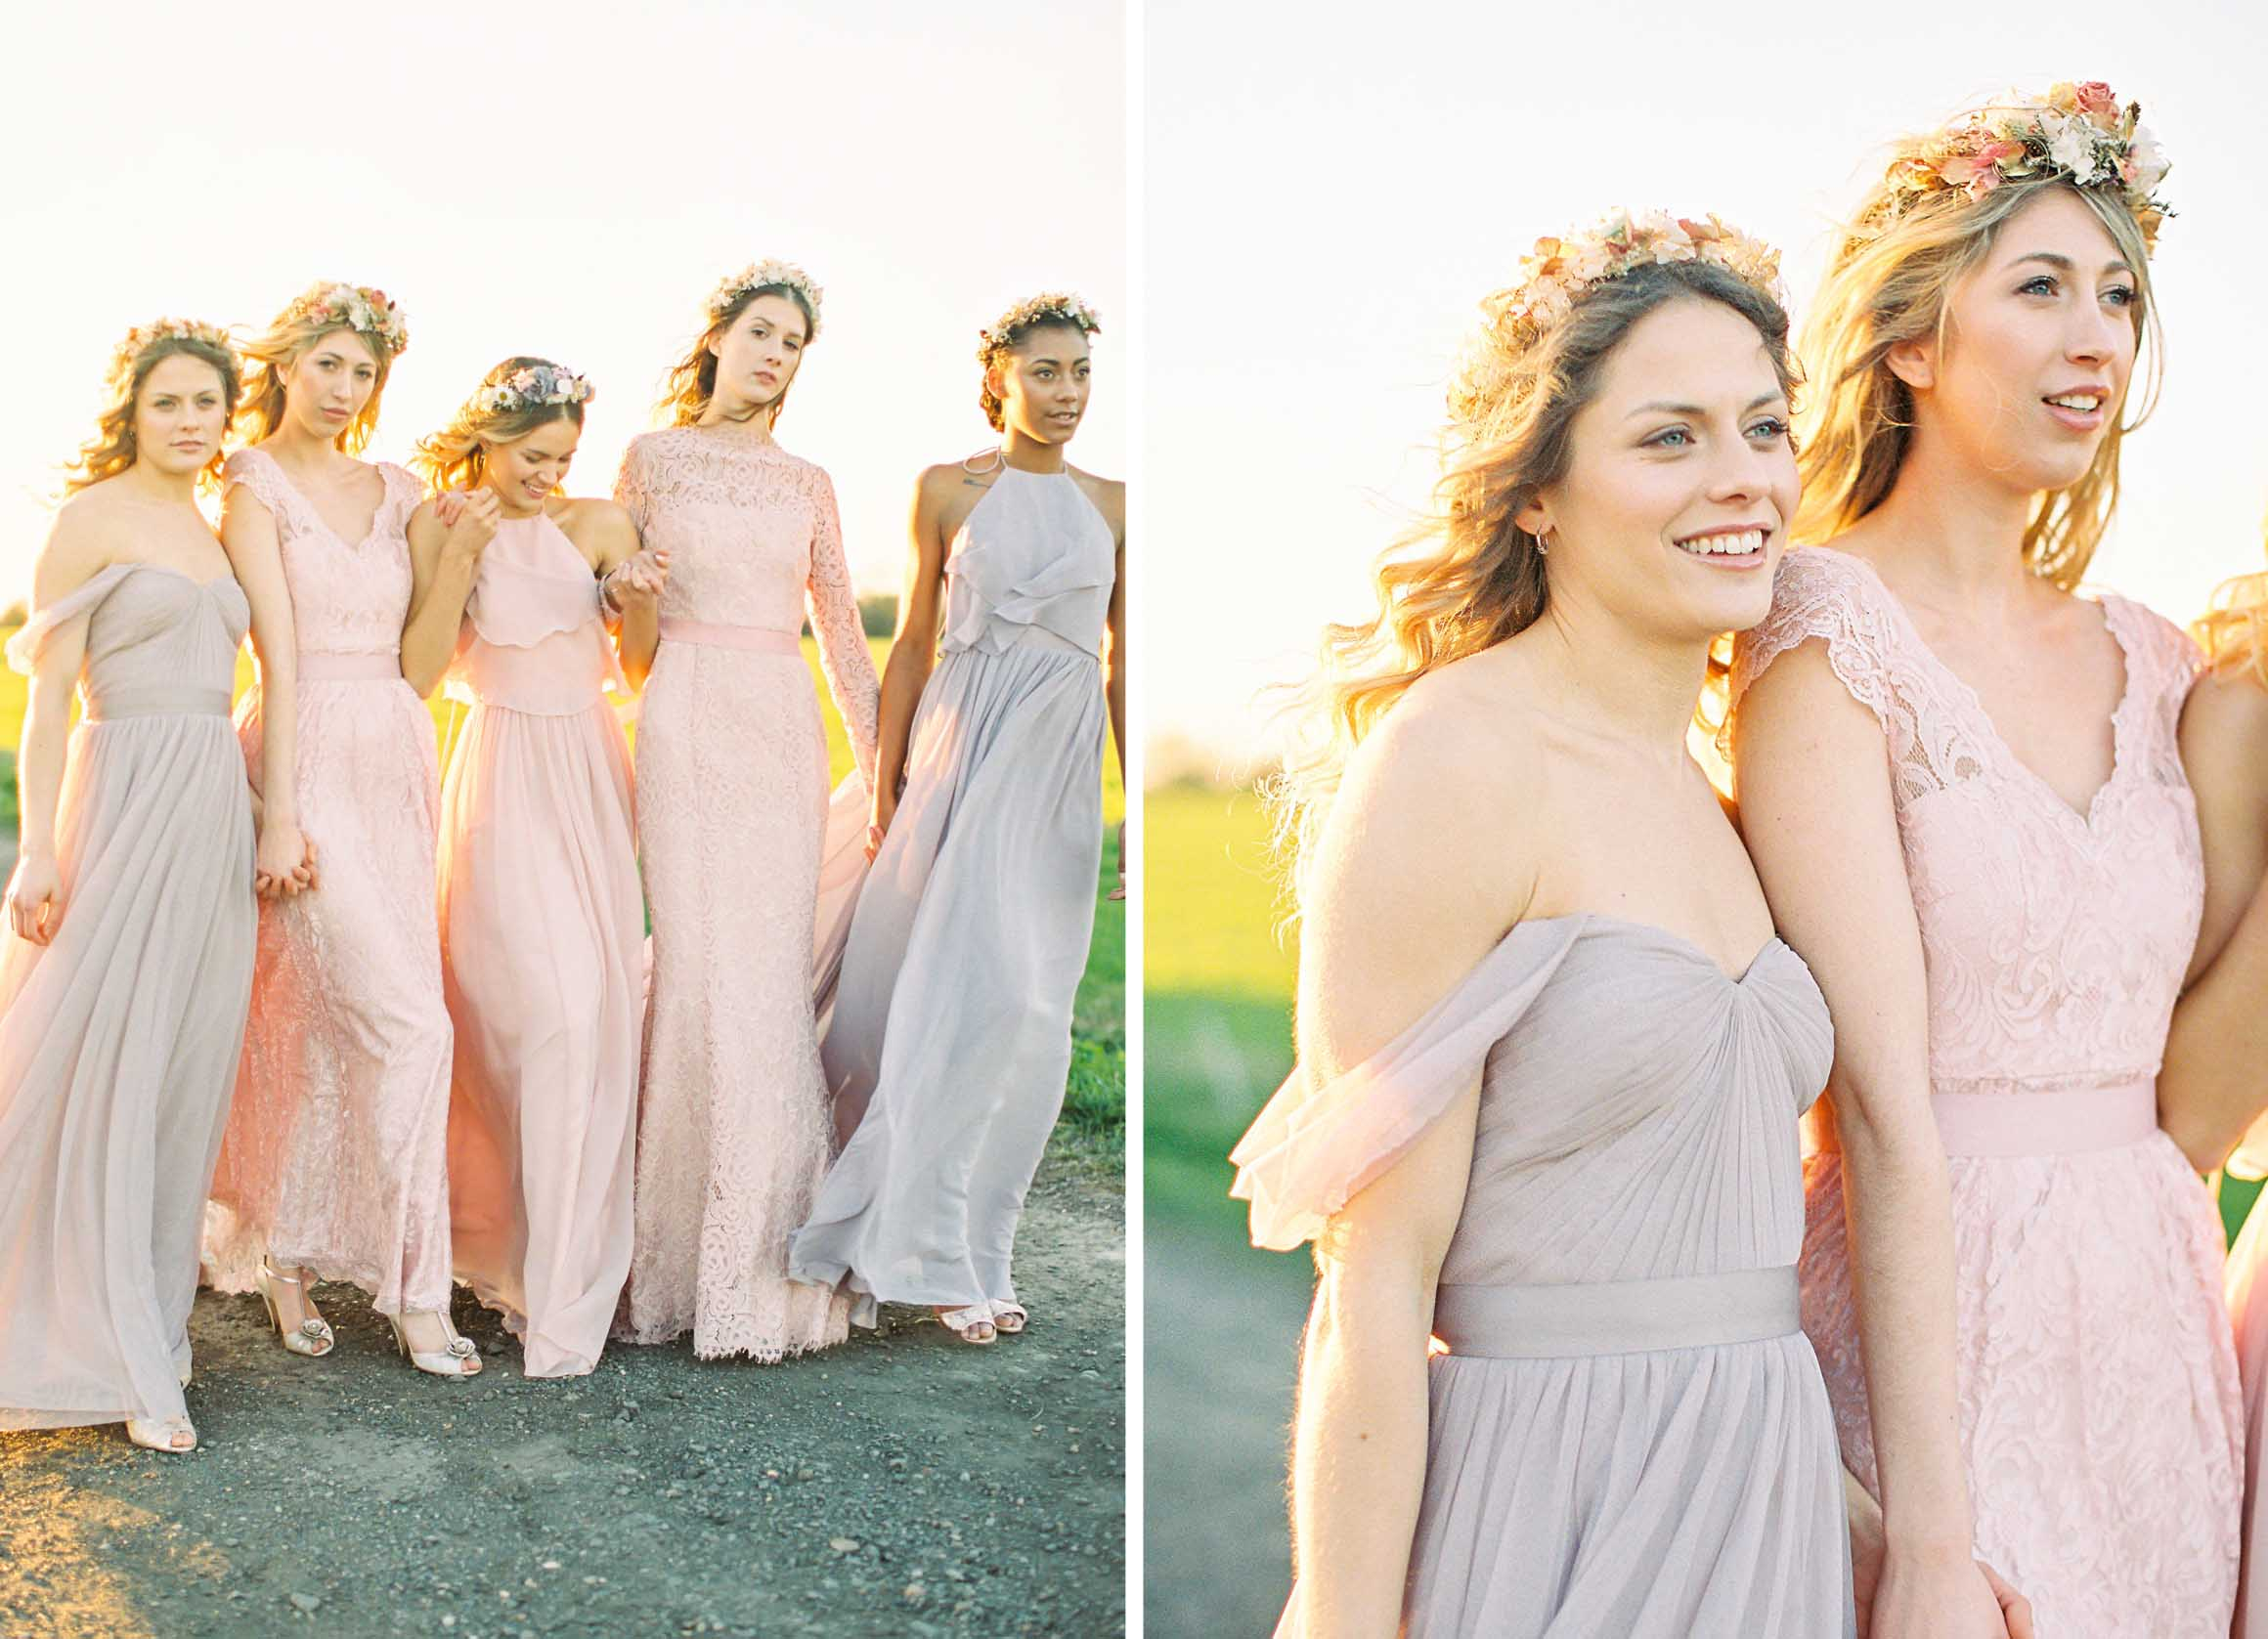 Amy O'Boyle Photography- Destination & UK Fine Art Film Wedding Photographer- TH&TH Bridesmaid Dress Shoot 3.jpg